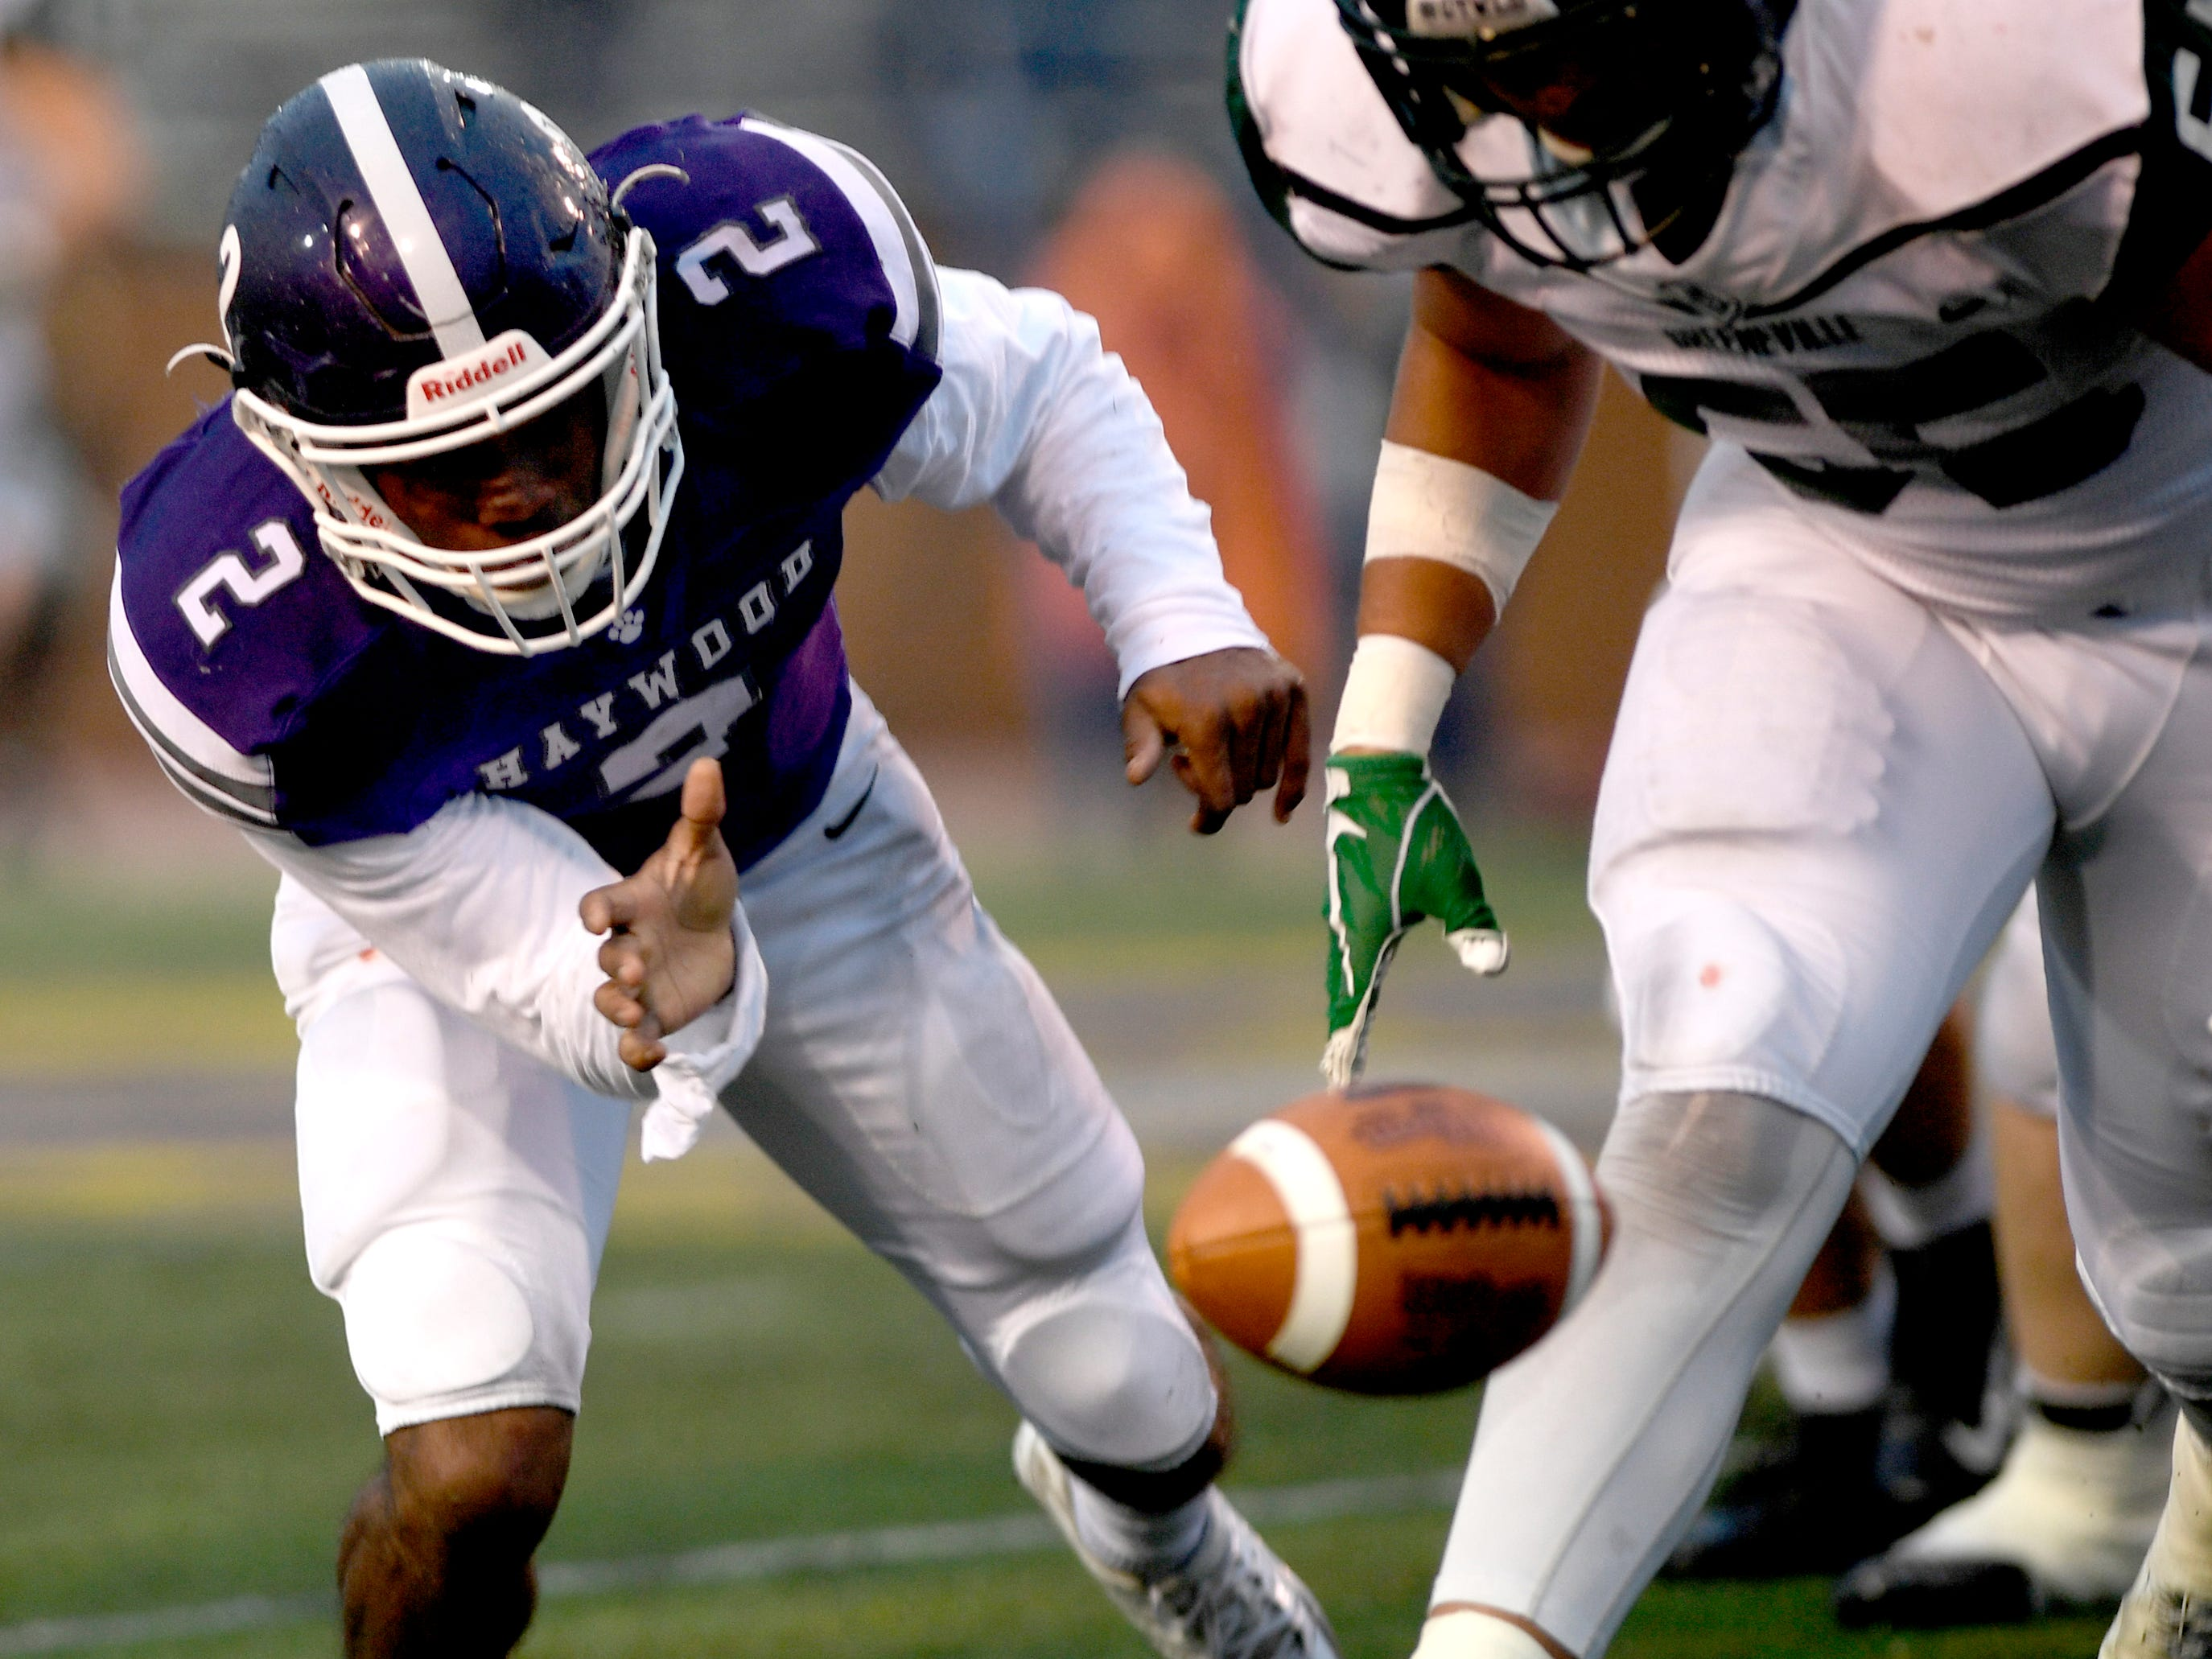 Haywood's  Deyondrius Hines (2) fumbles the ball as Greeneville's Logan Shipley (55) moves in to recover the ball during the Class 4A BlueCross Bowl state championship Thursday, Nov. 29, 2018, at Tennessee Tech's Tucker Stadium in Cookeville, Tenn.